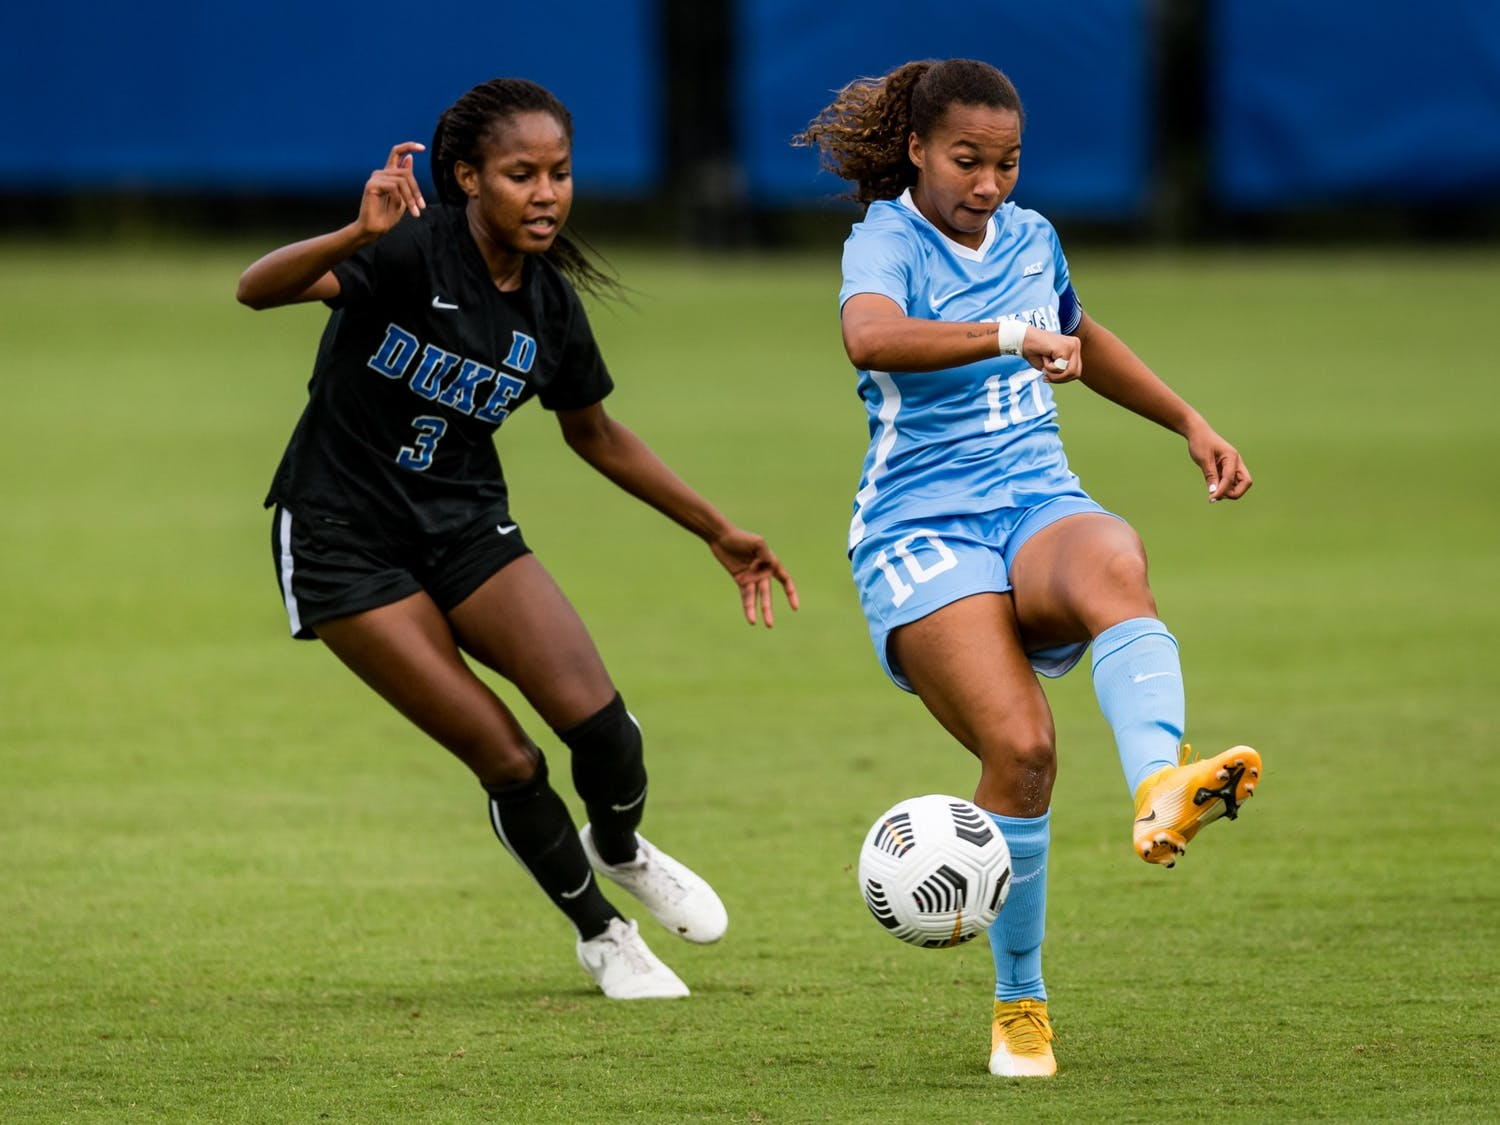 Duke Women's soccer takes on the University of North Carolina at Koskinen Stadium in Durham, NC on September 27, 2020. Photo courtesy of Lindy Brown.